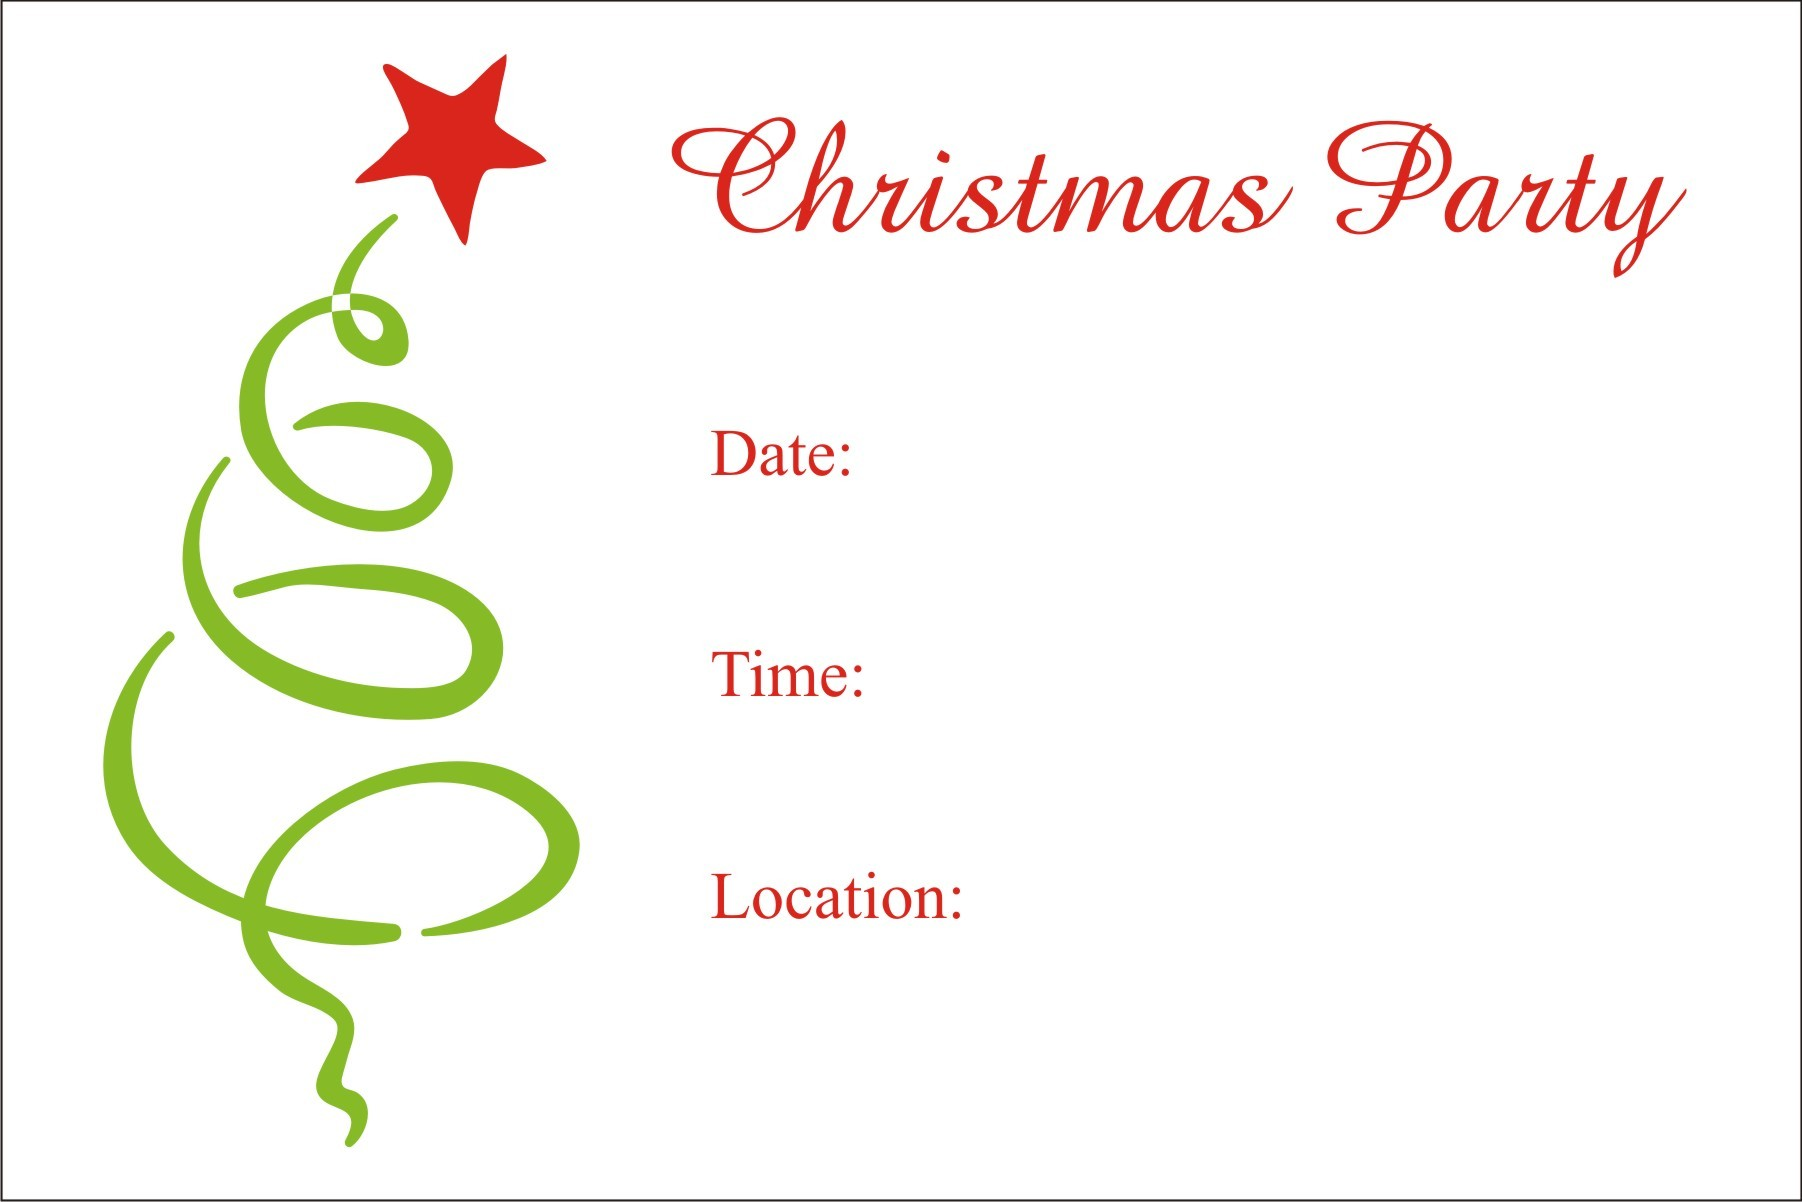 Christmas party free printable holiday invitation personalized party invites for Free holiday invite templates